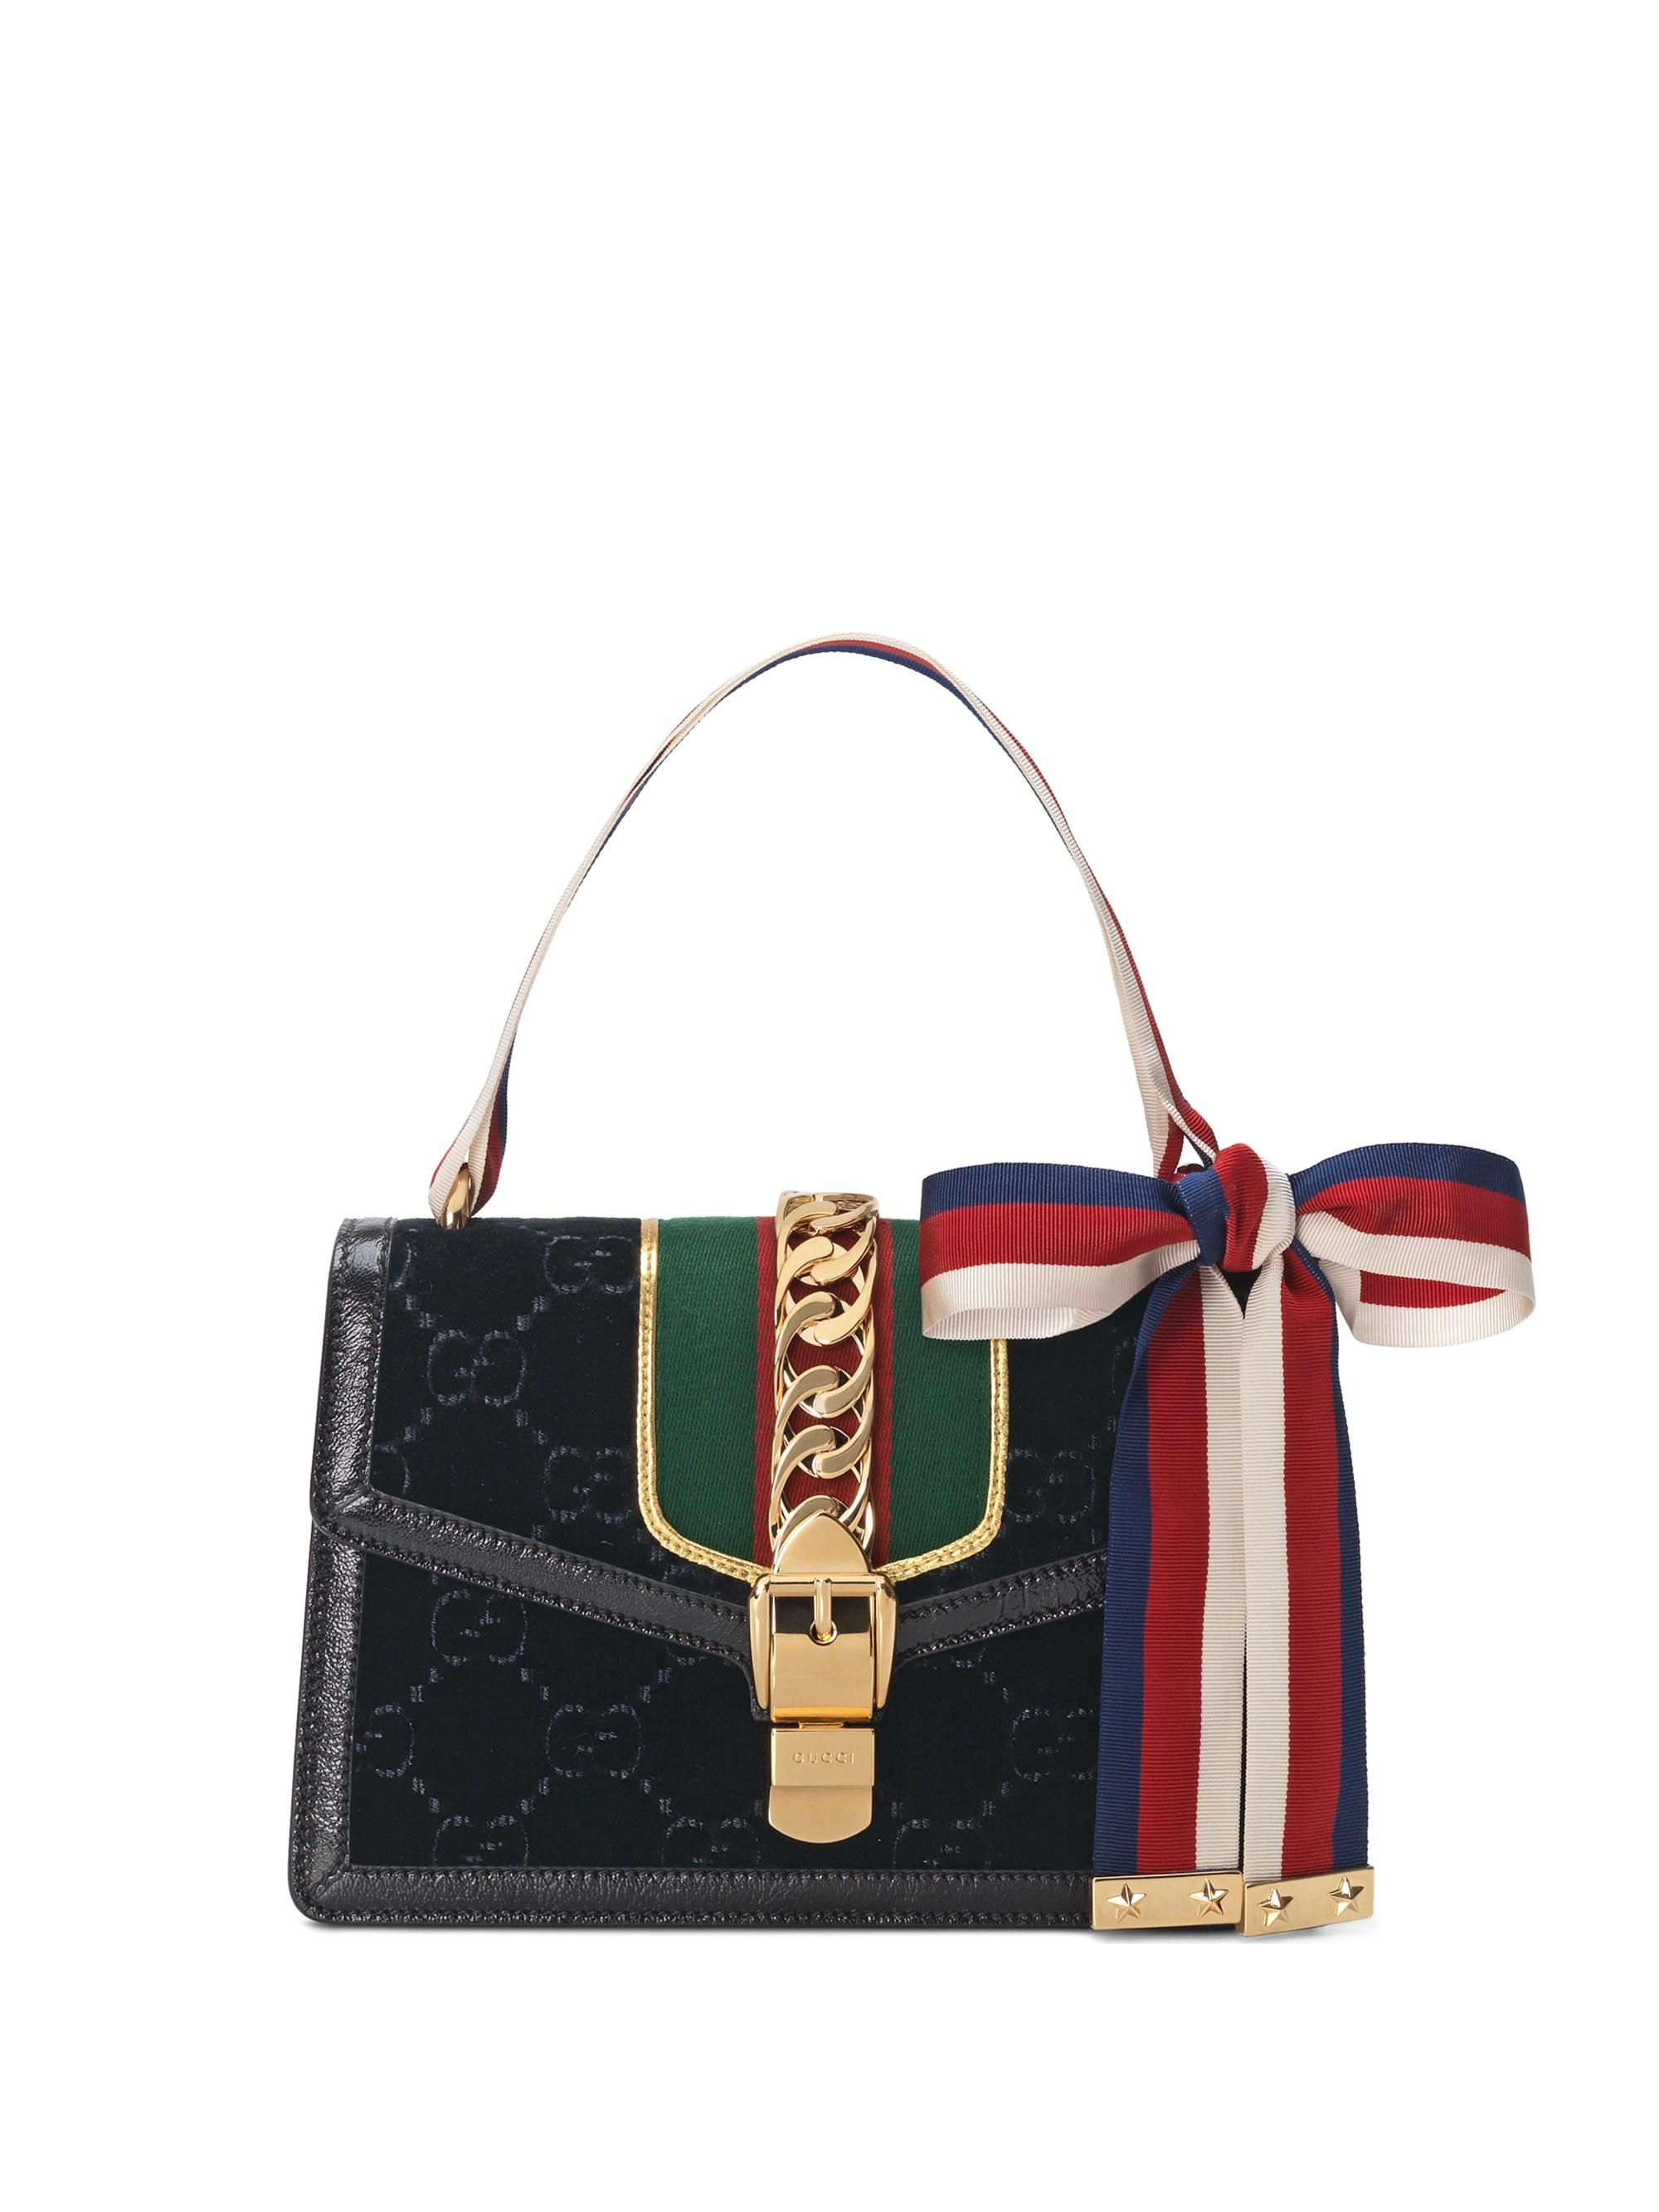 c8f345c342b9 Gucci - Women's Sylvie GG Velvet Small Shoulder Bag - Black - Lyst. View  fullscreen